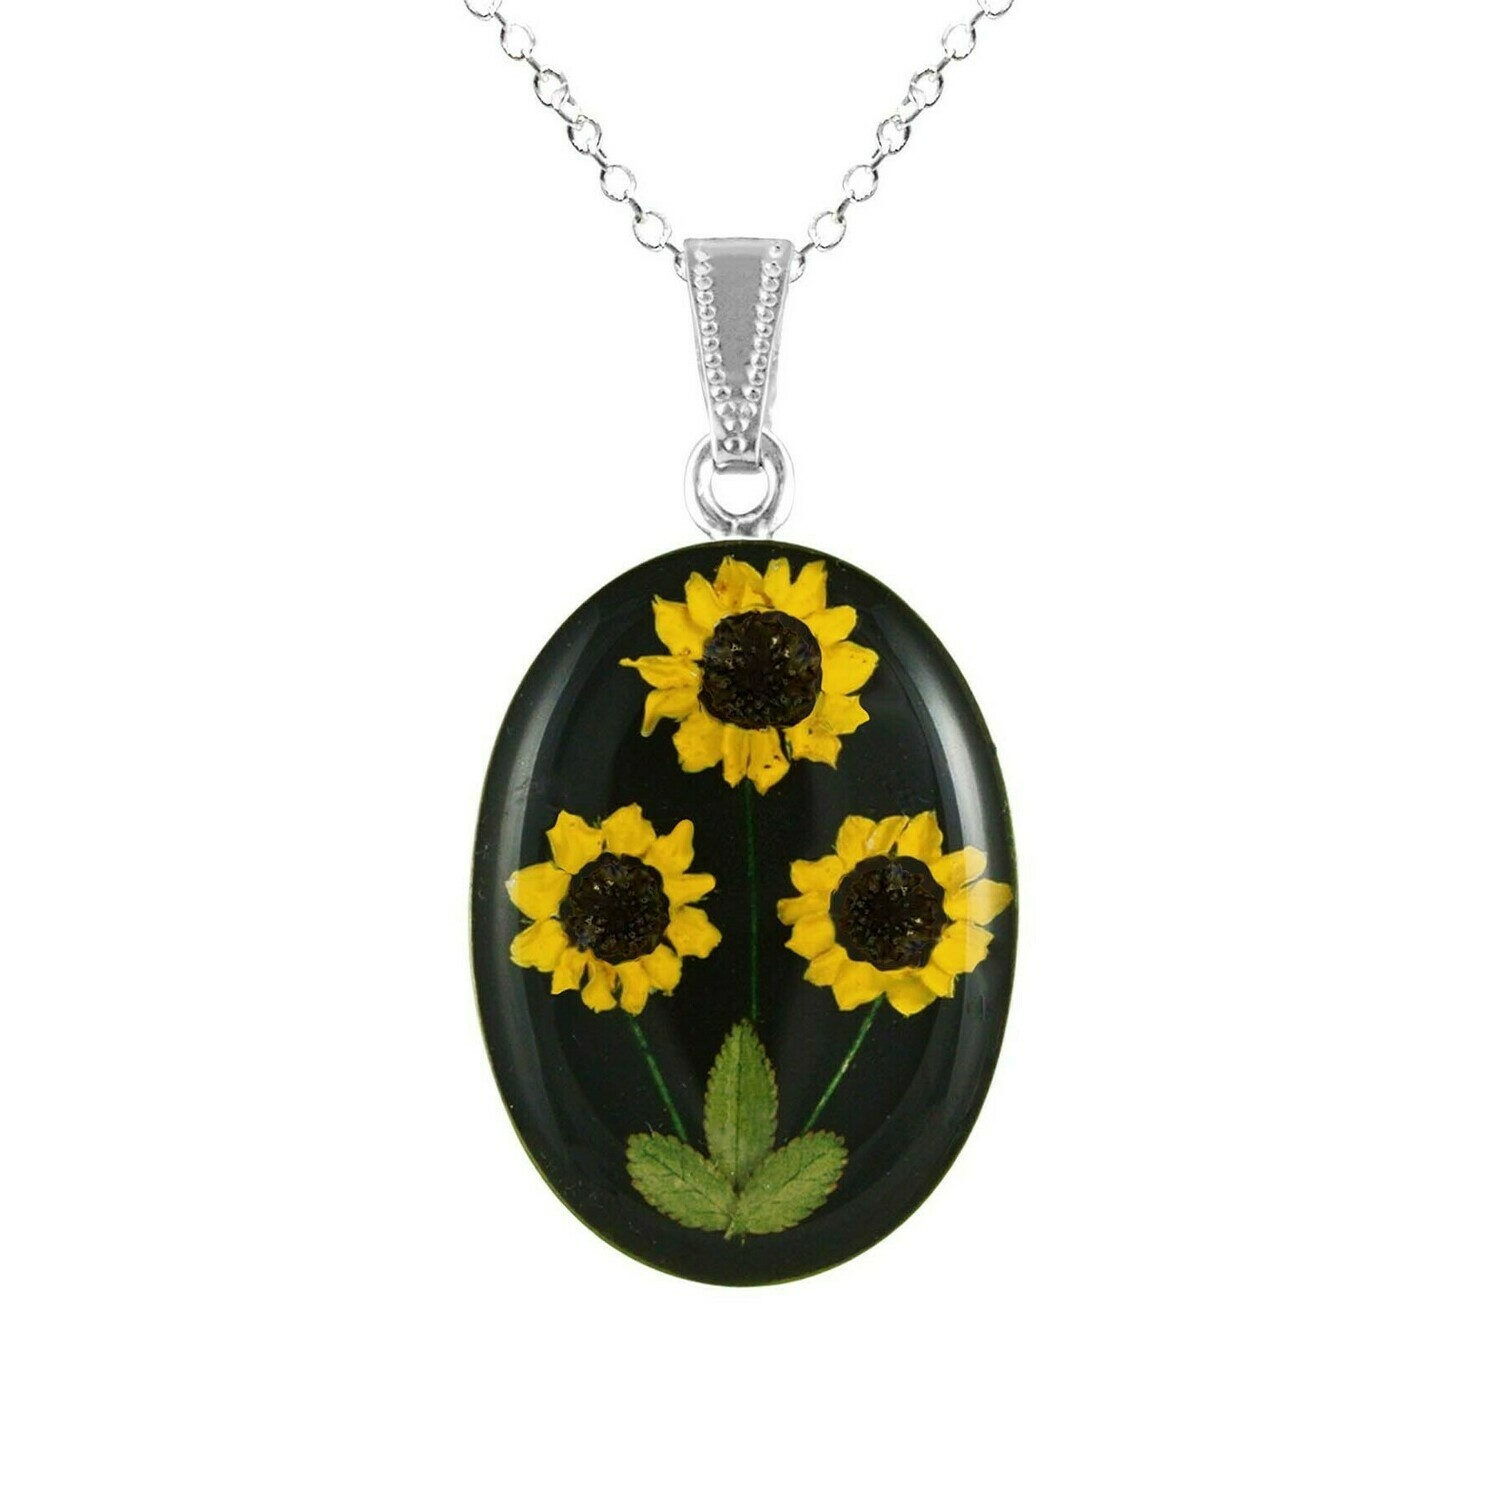 Sunflower Necklace, Large Oval, Black Background